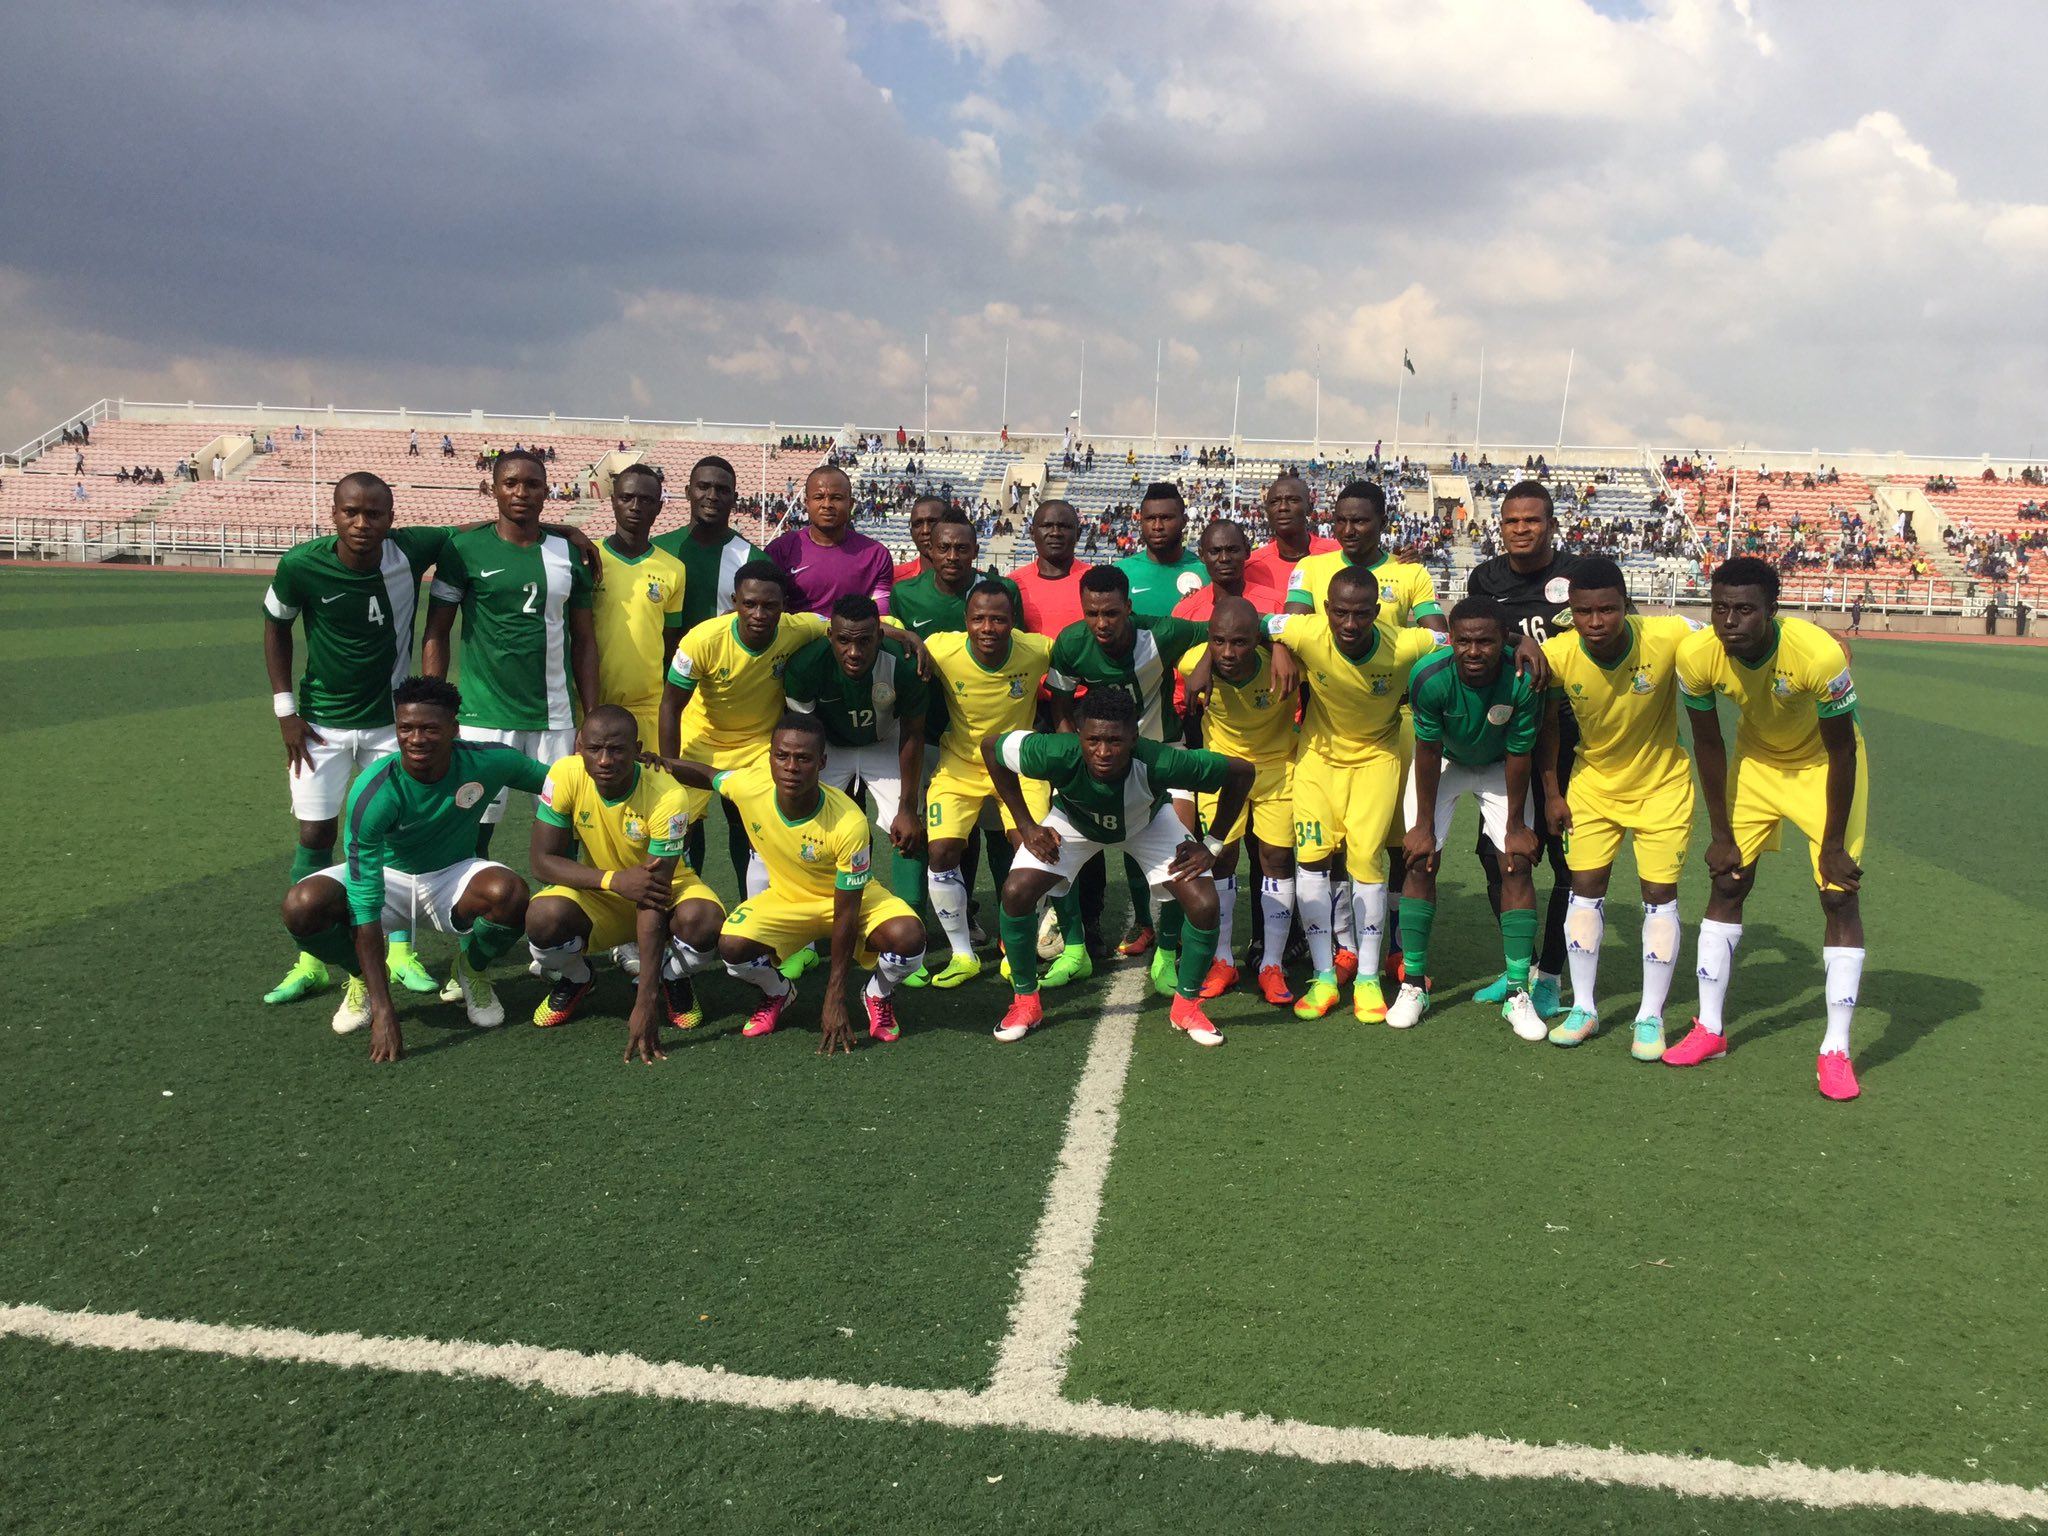 Benin Republic Fans Boast: Home Eagles Will Fall In Cotonou!